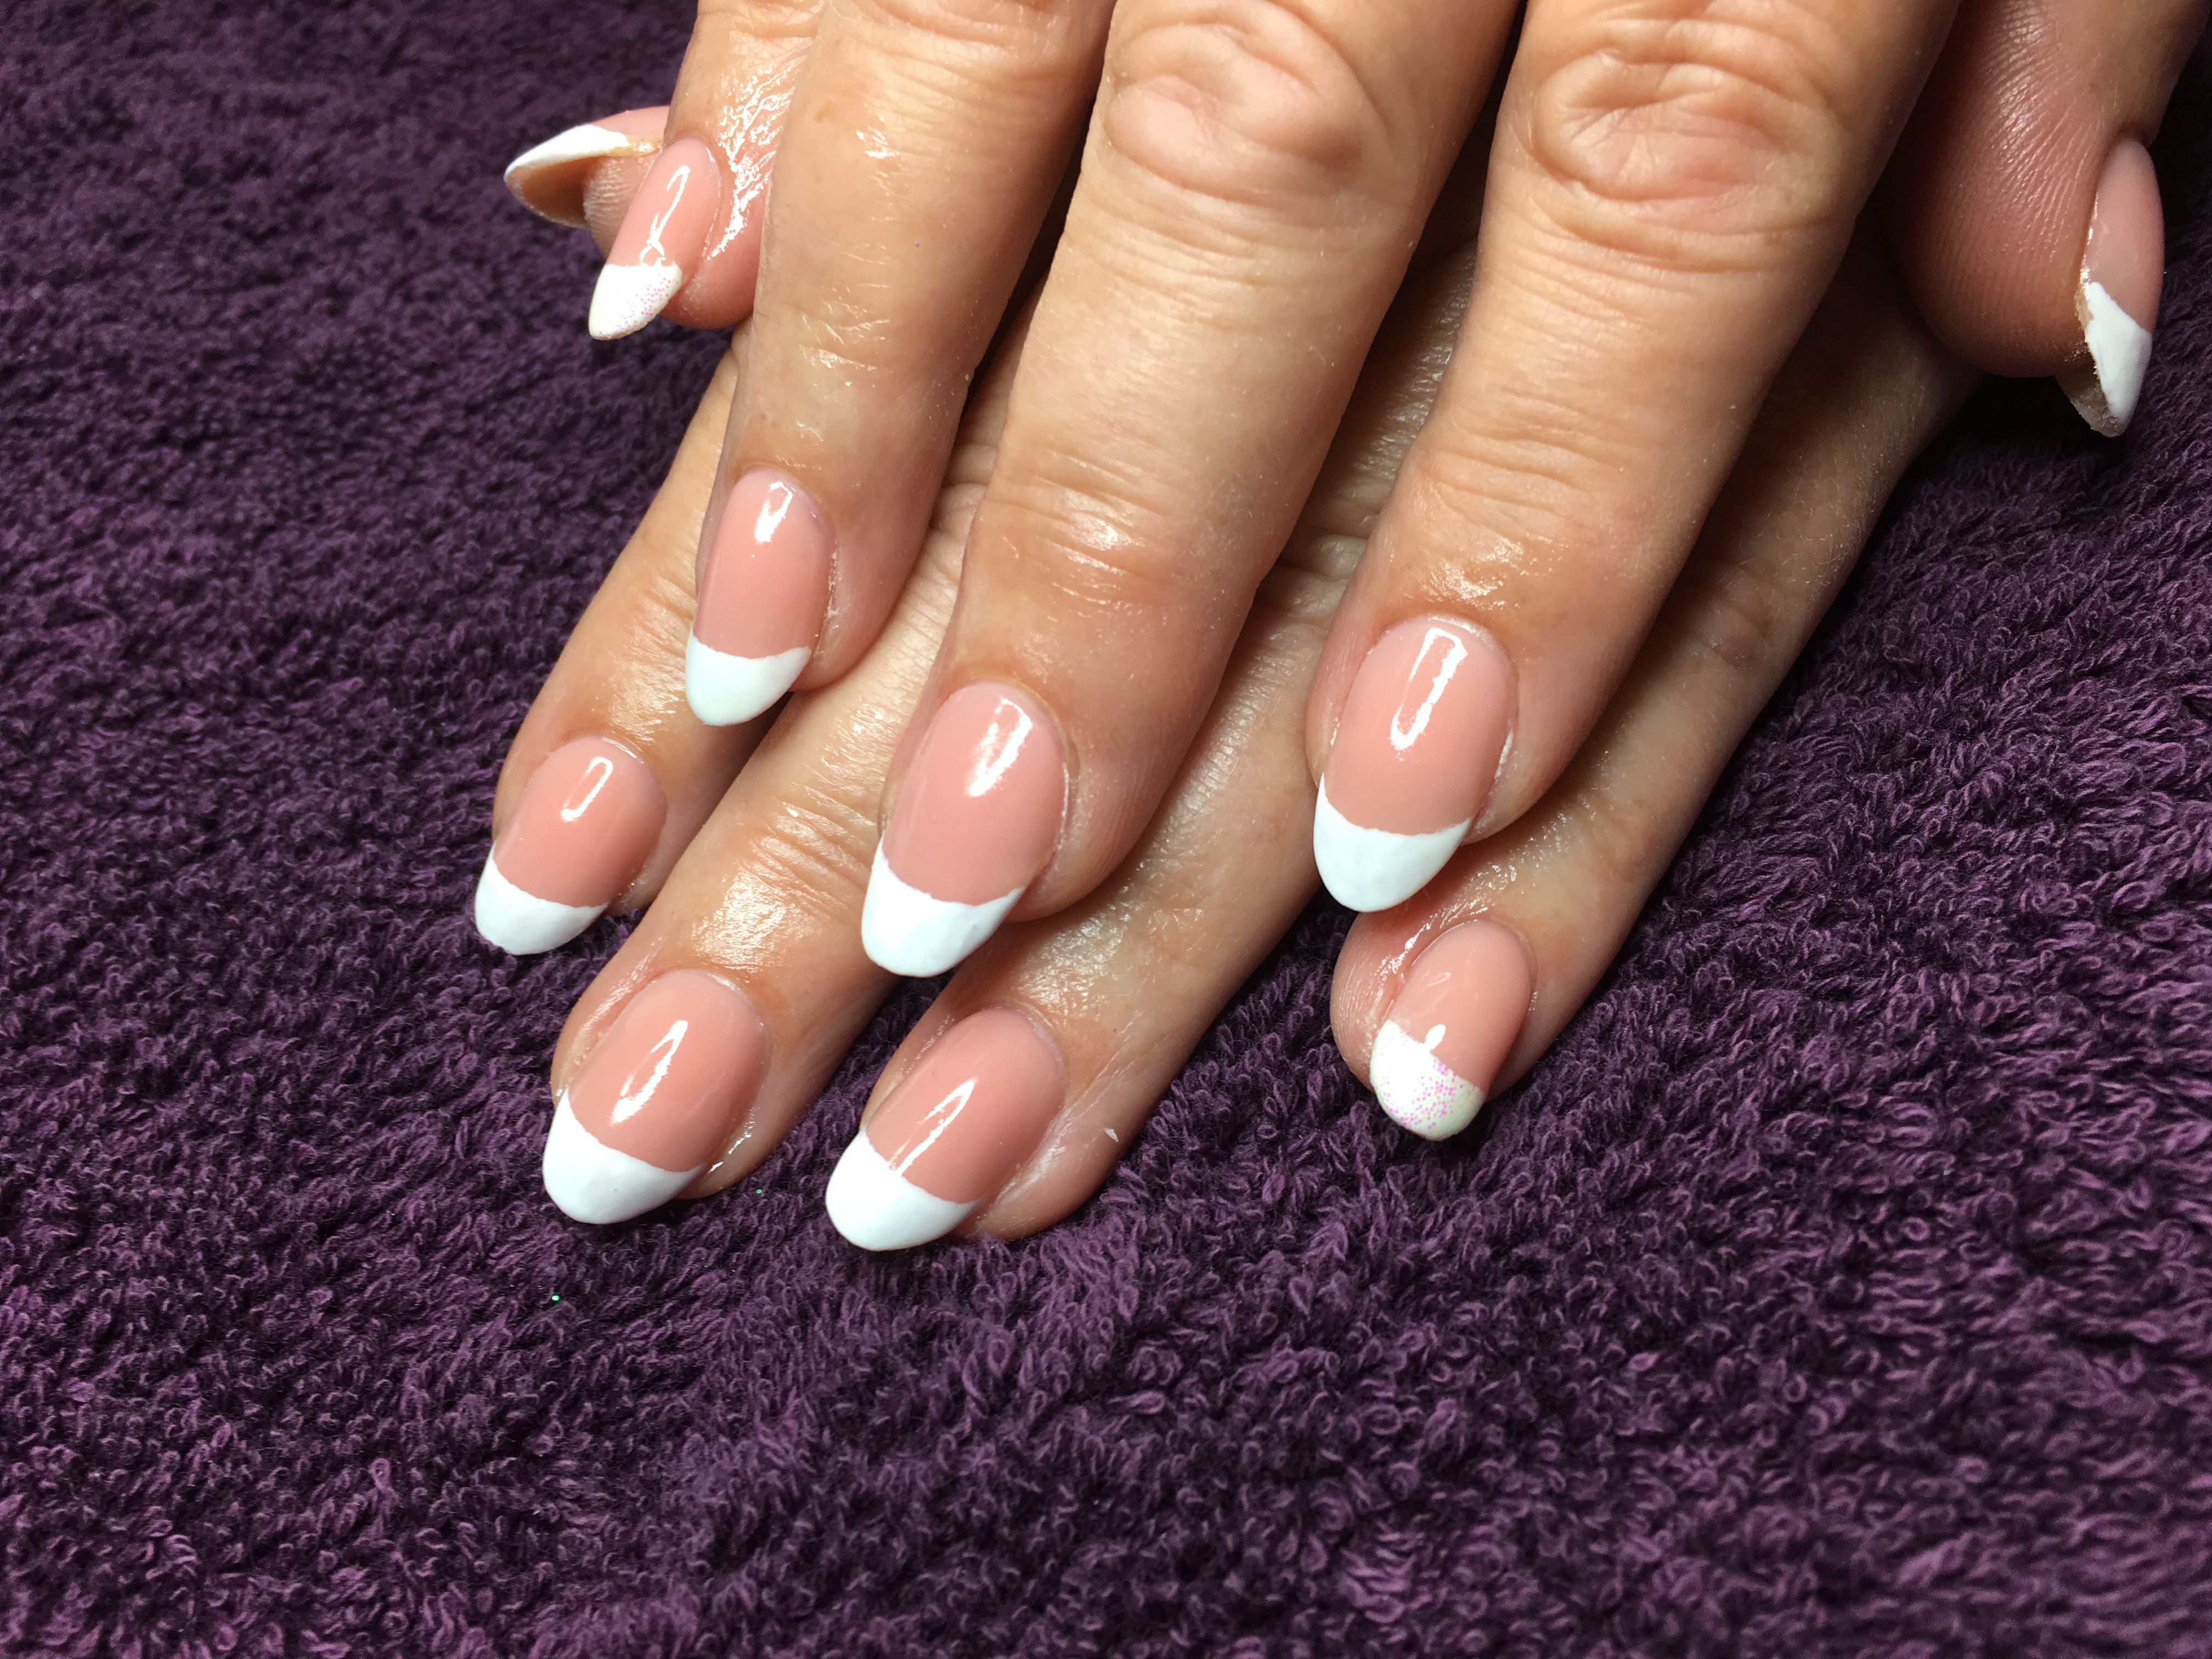 French manicure using gelish polygel manicure my nails